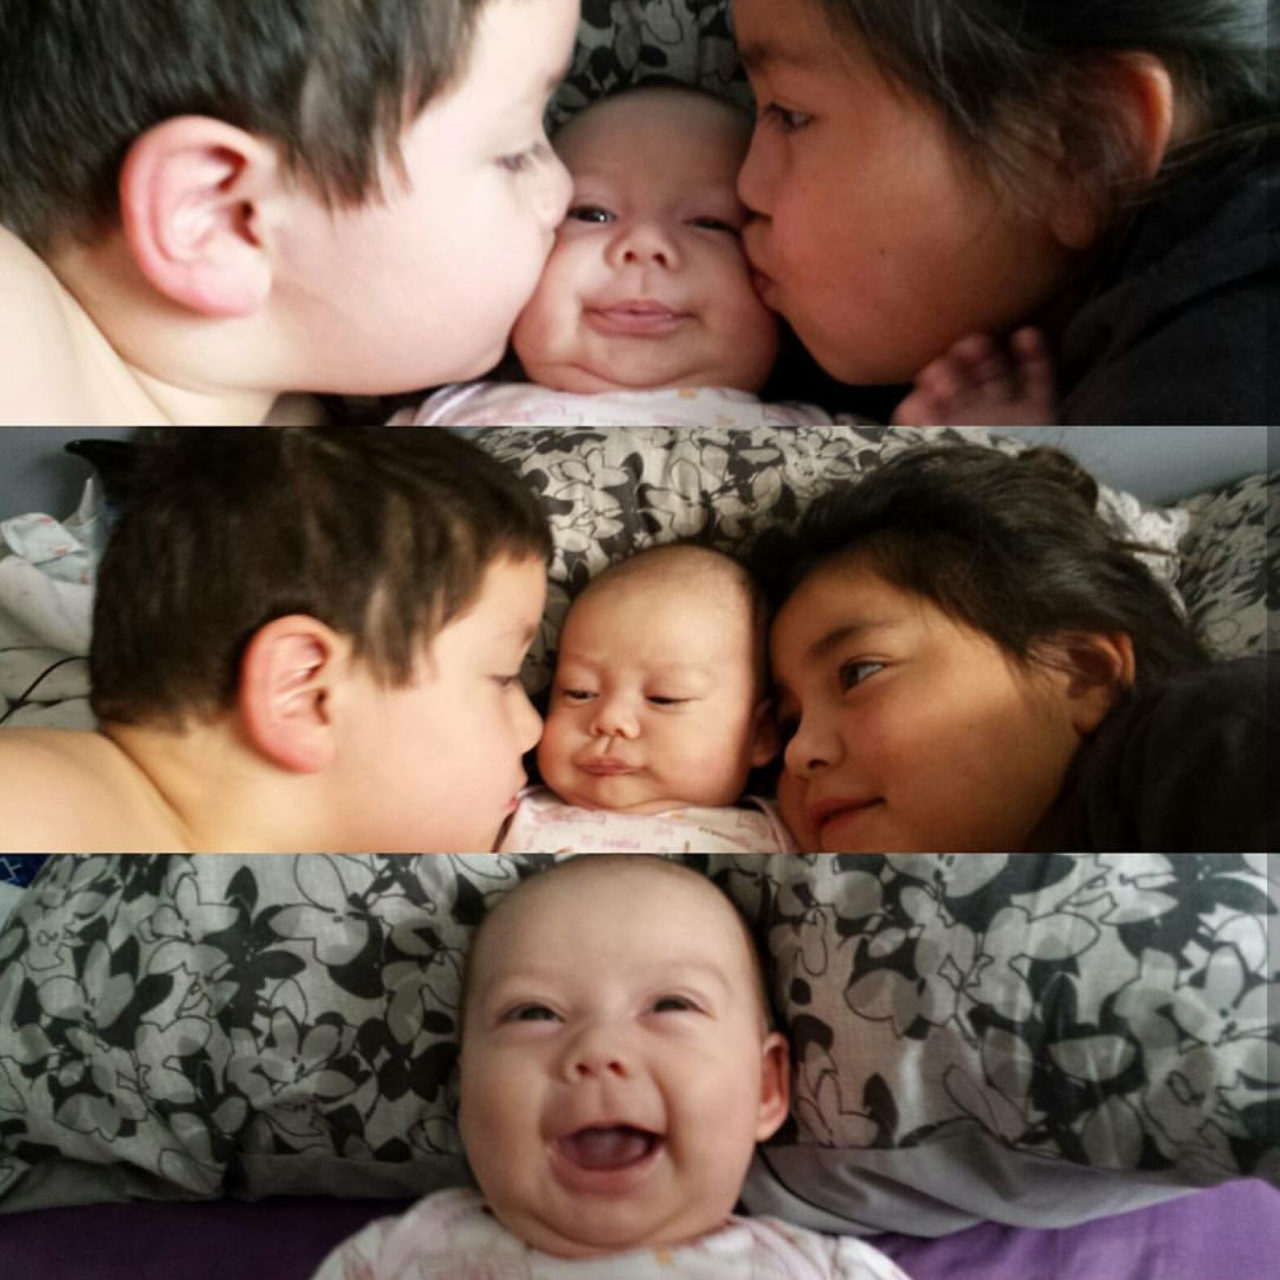 Indigenous children welcome their new sibling with kisses.